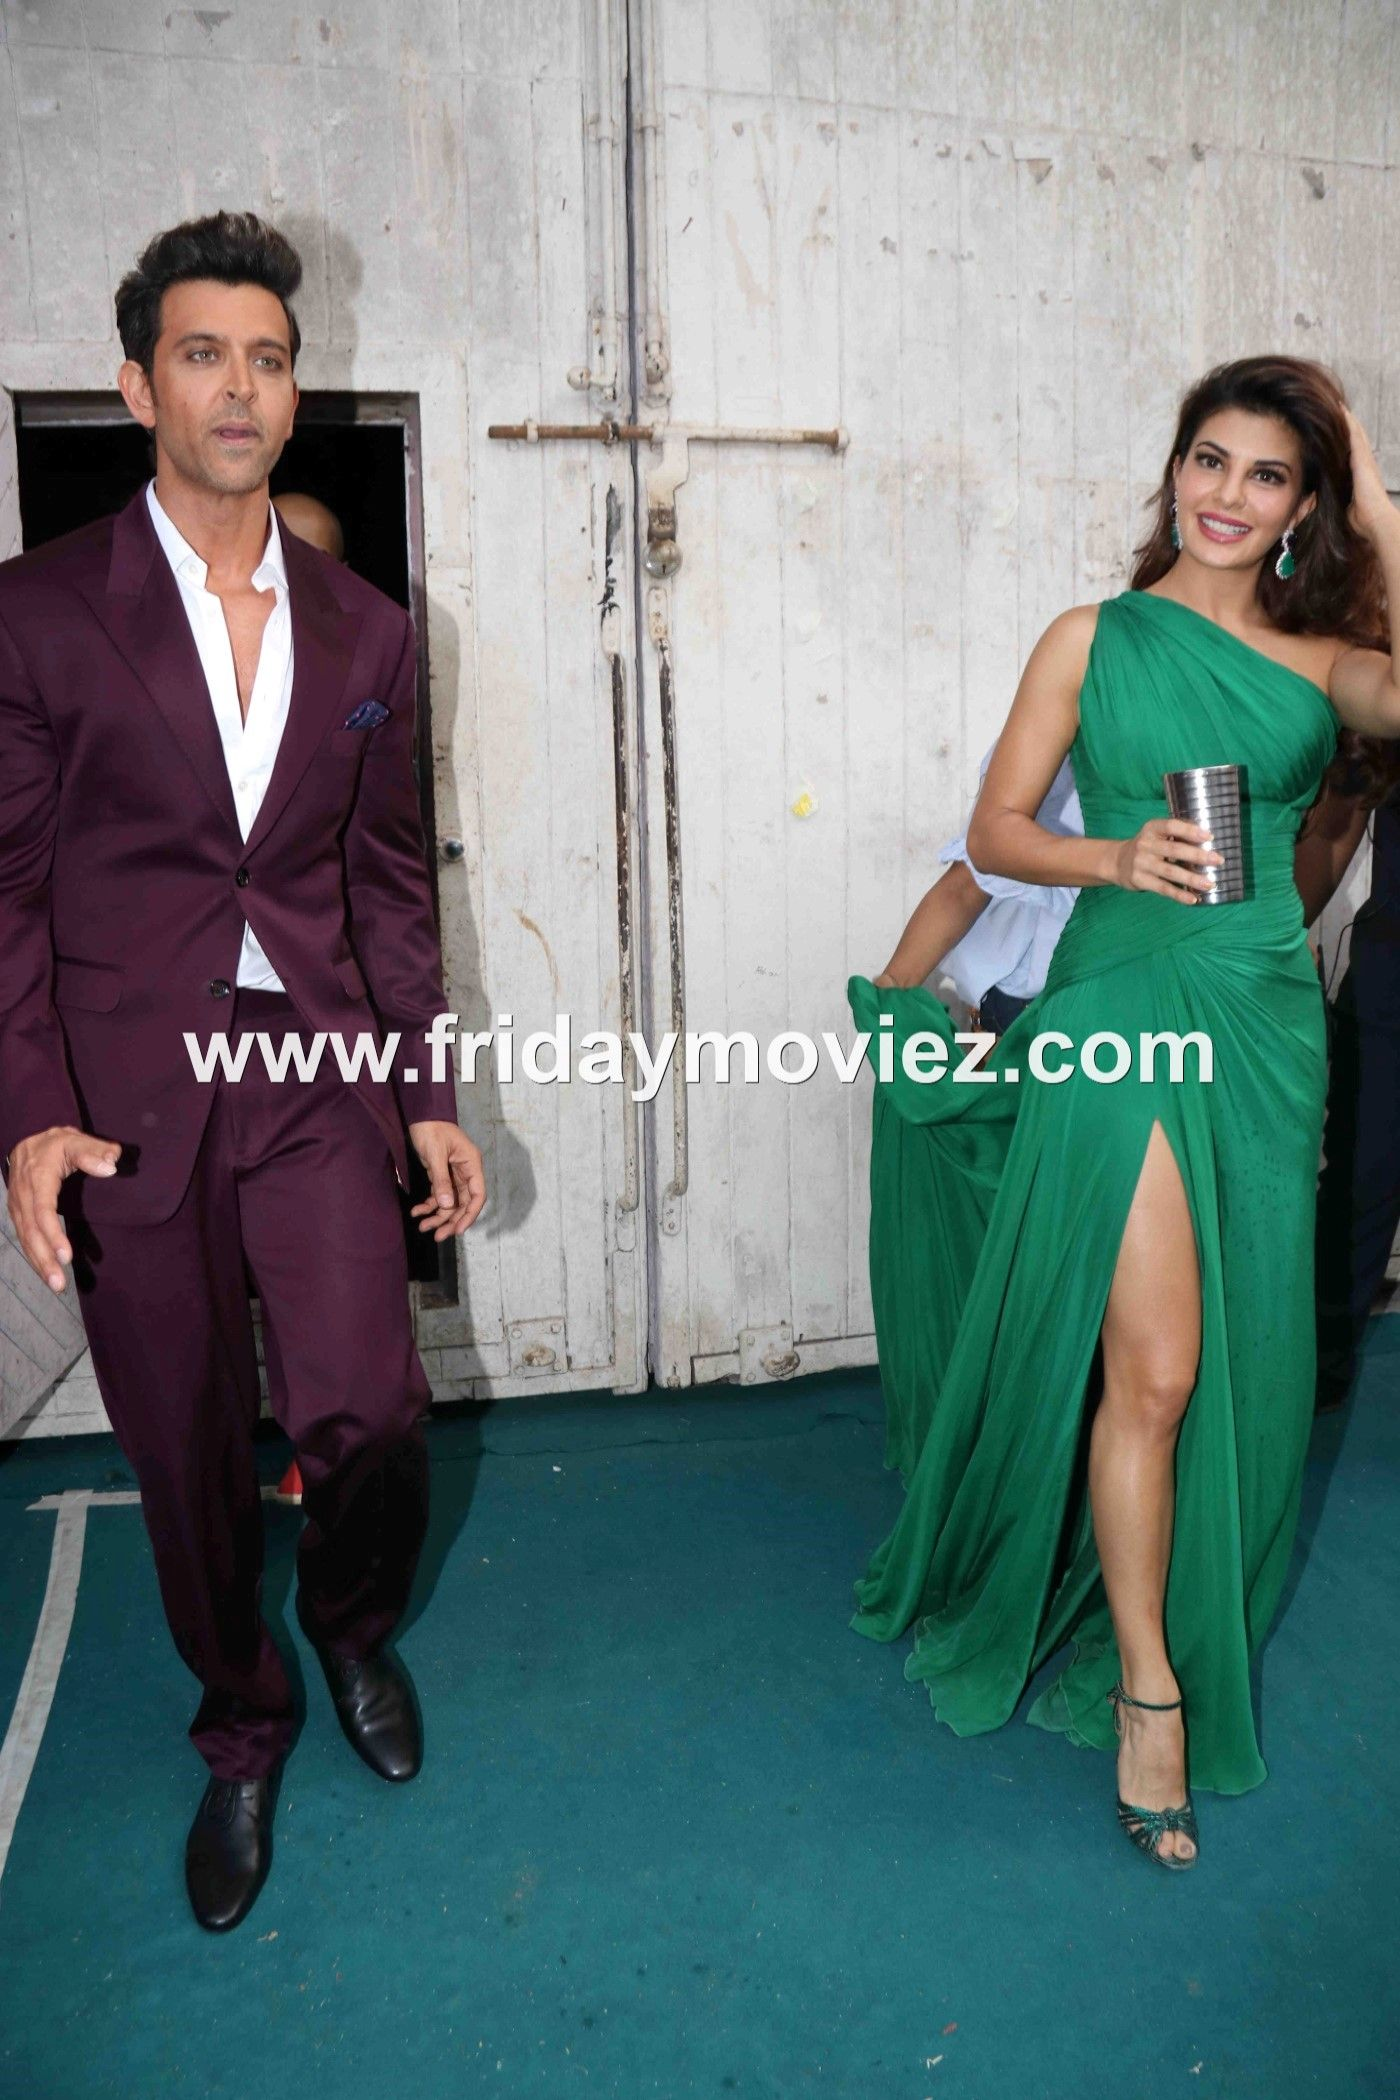 #HrithikRoshan along with #JacquelineFernandez spotted at #Mehboobstudios